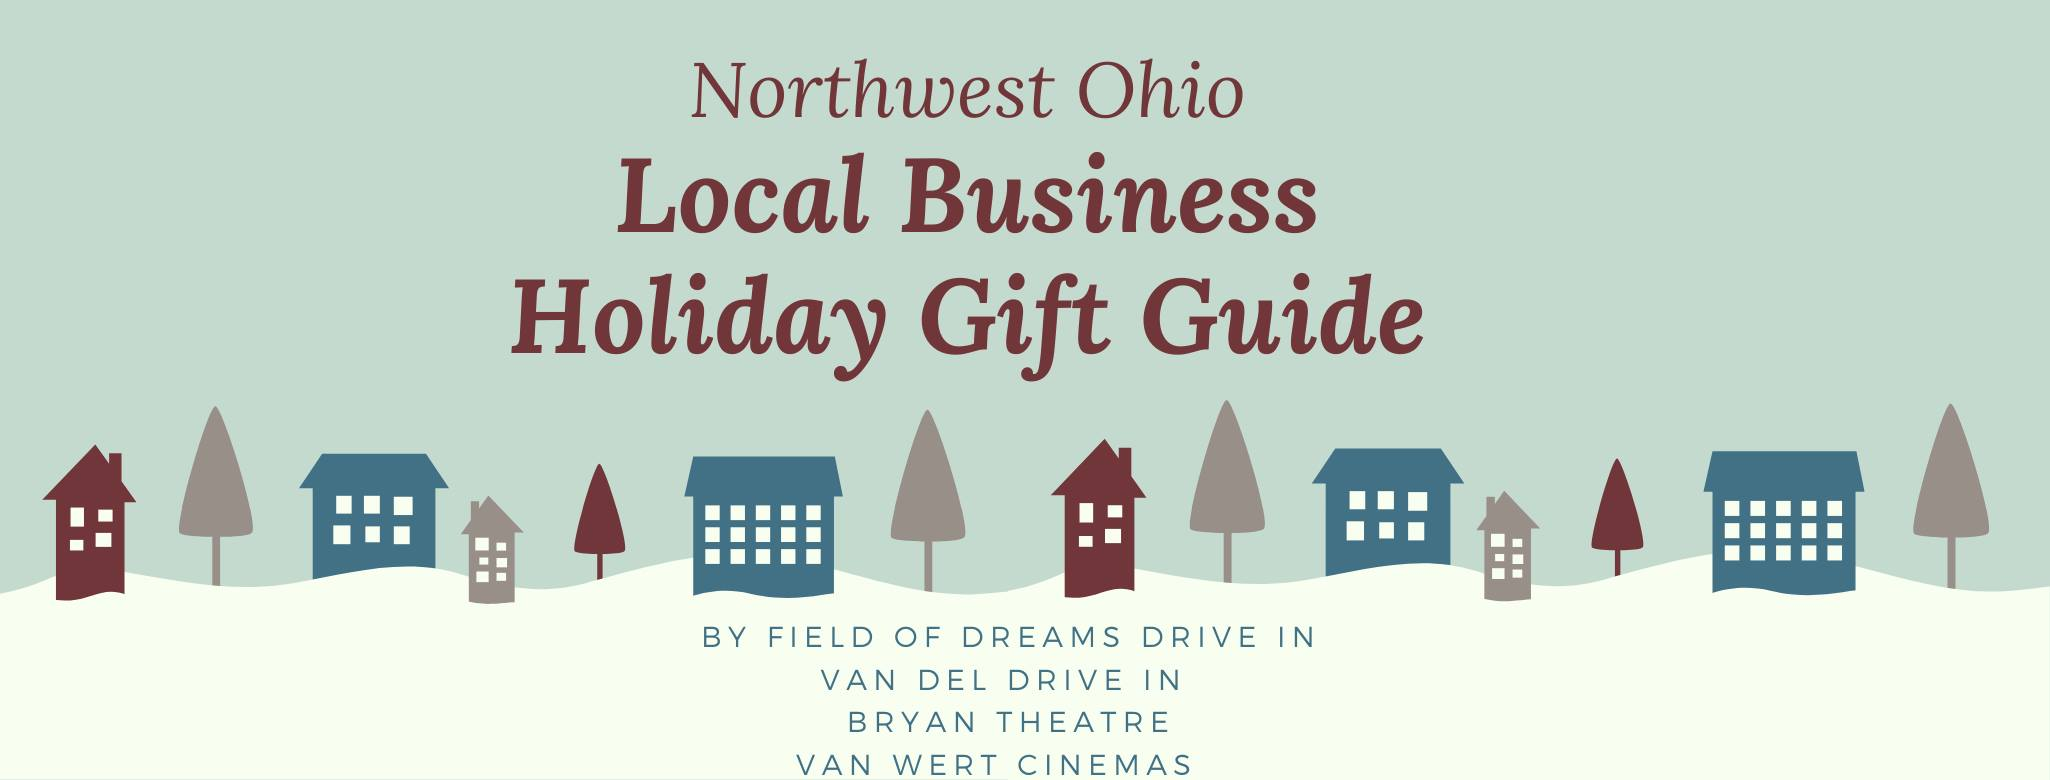 Small businesses in Northwest Ohio can be part of a Holiday Virtual Shopping Collaborative